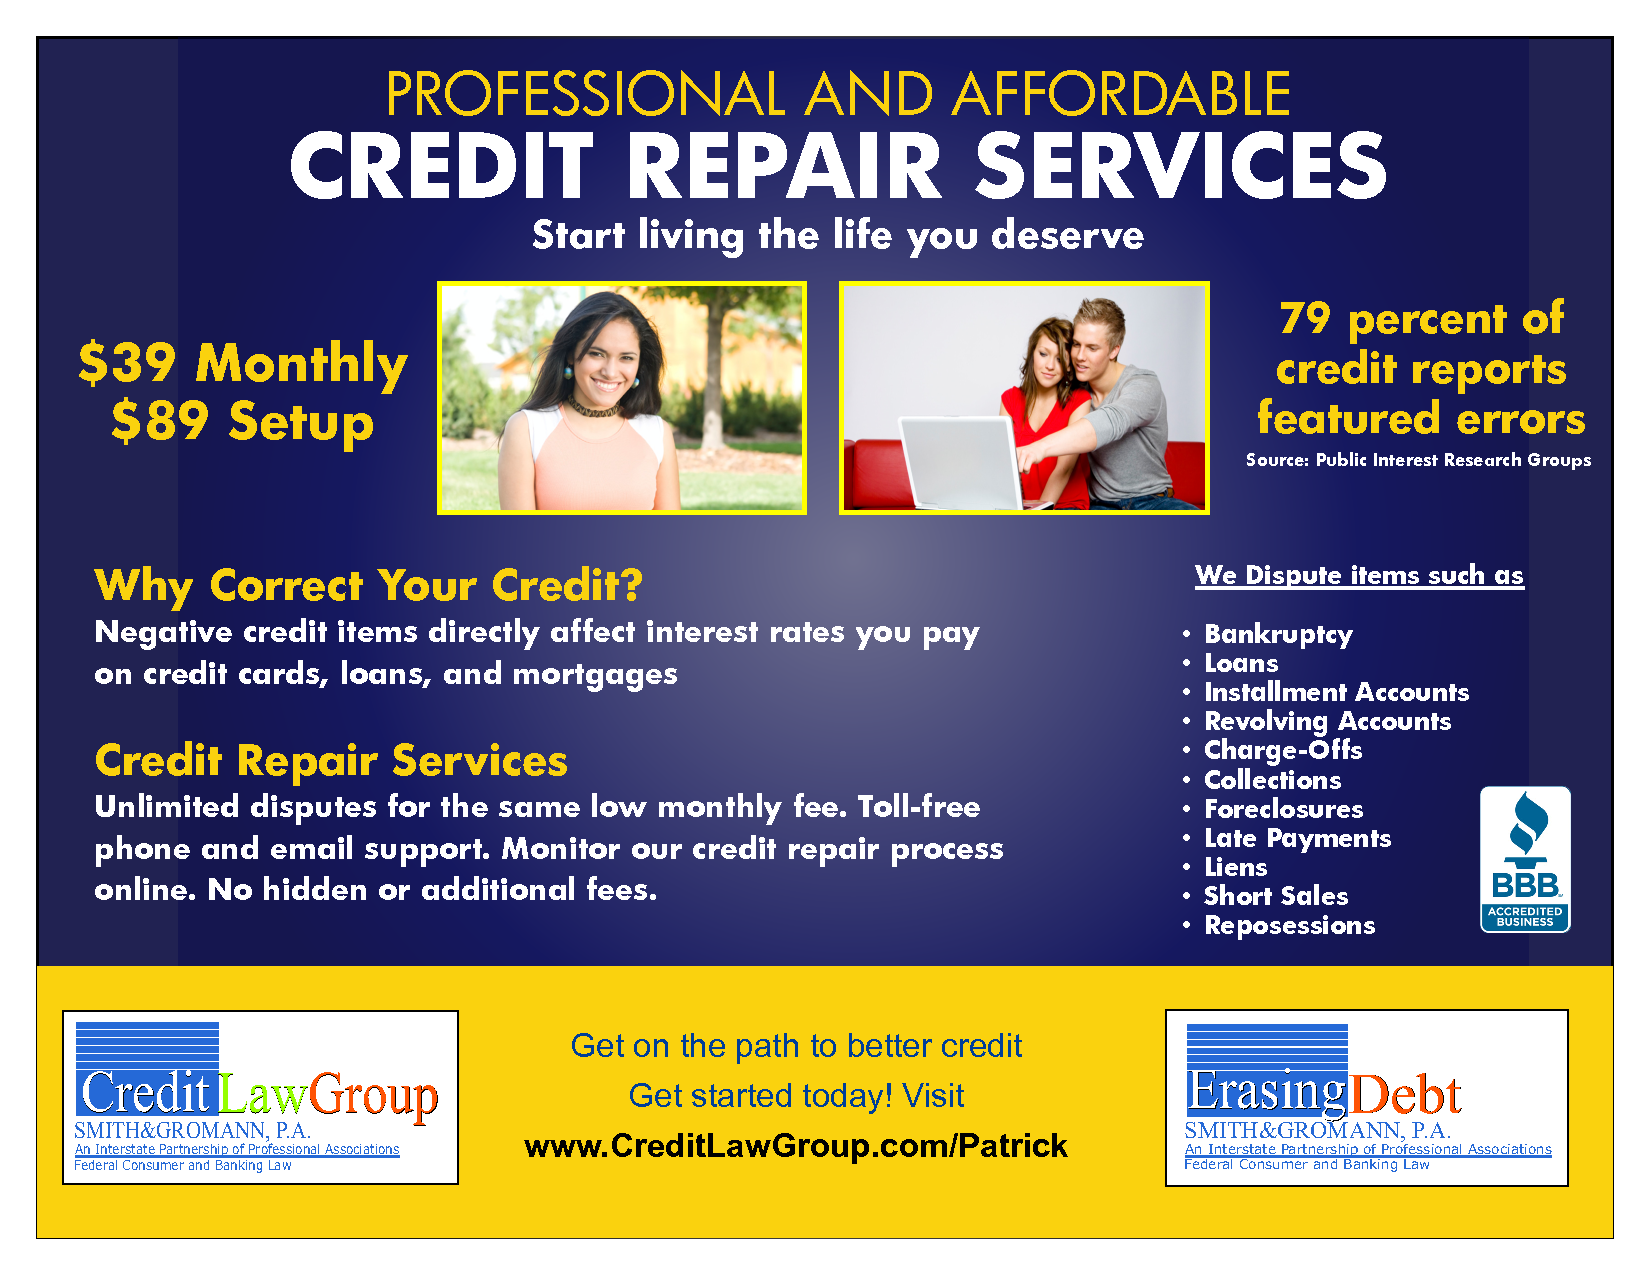 credit repair flyer google search my business marketing ideas pinterest marketing ideas. Black Bedroom Furniture Sets. Home Design Ideas